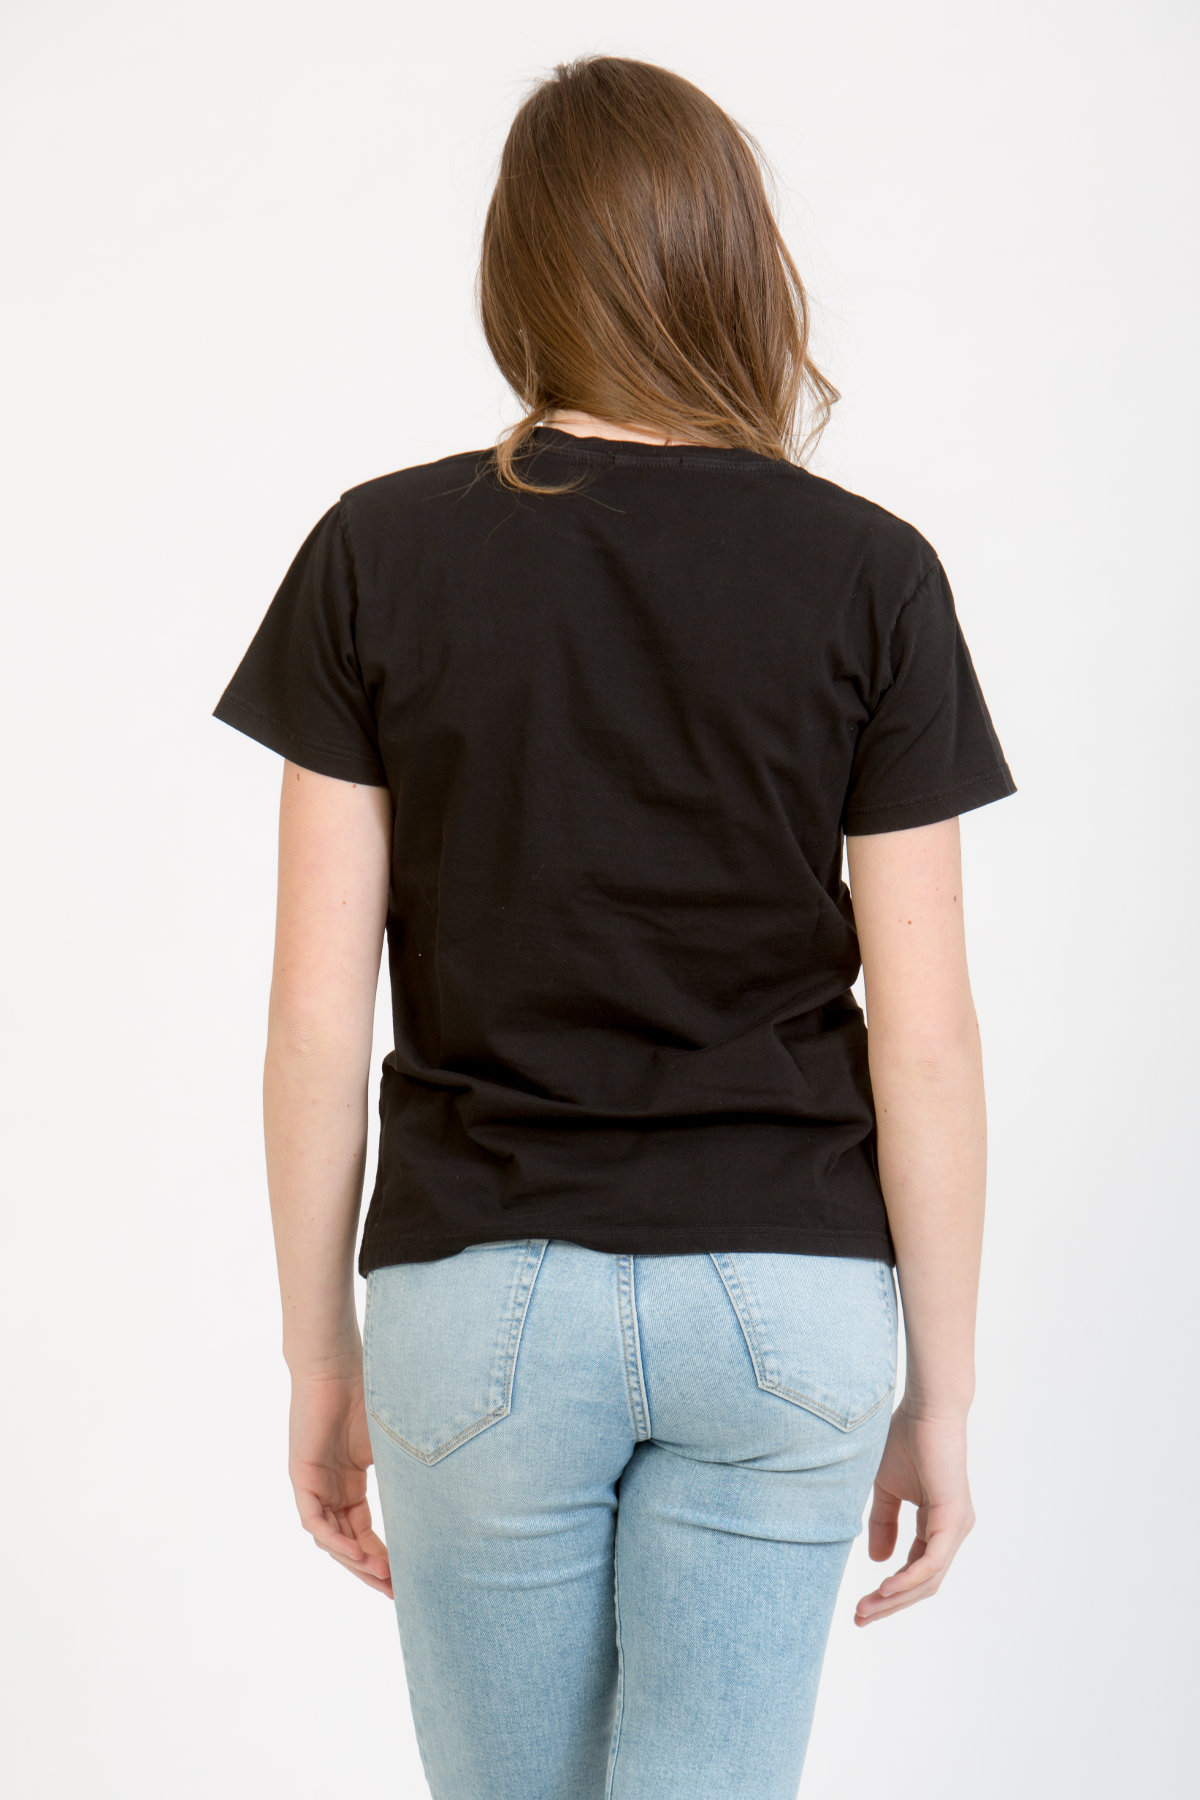 LERÊVERIES - T-shirt Donna Eco DREAM Colore Nero - C